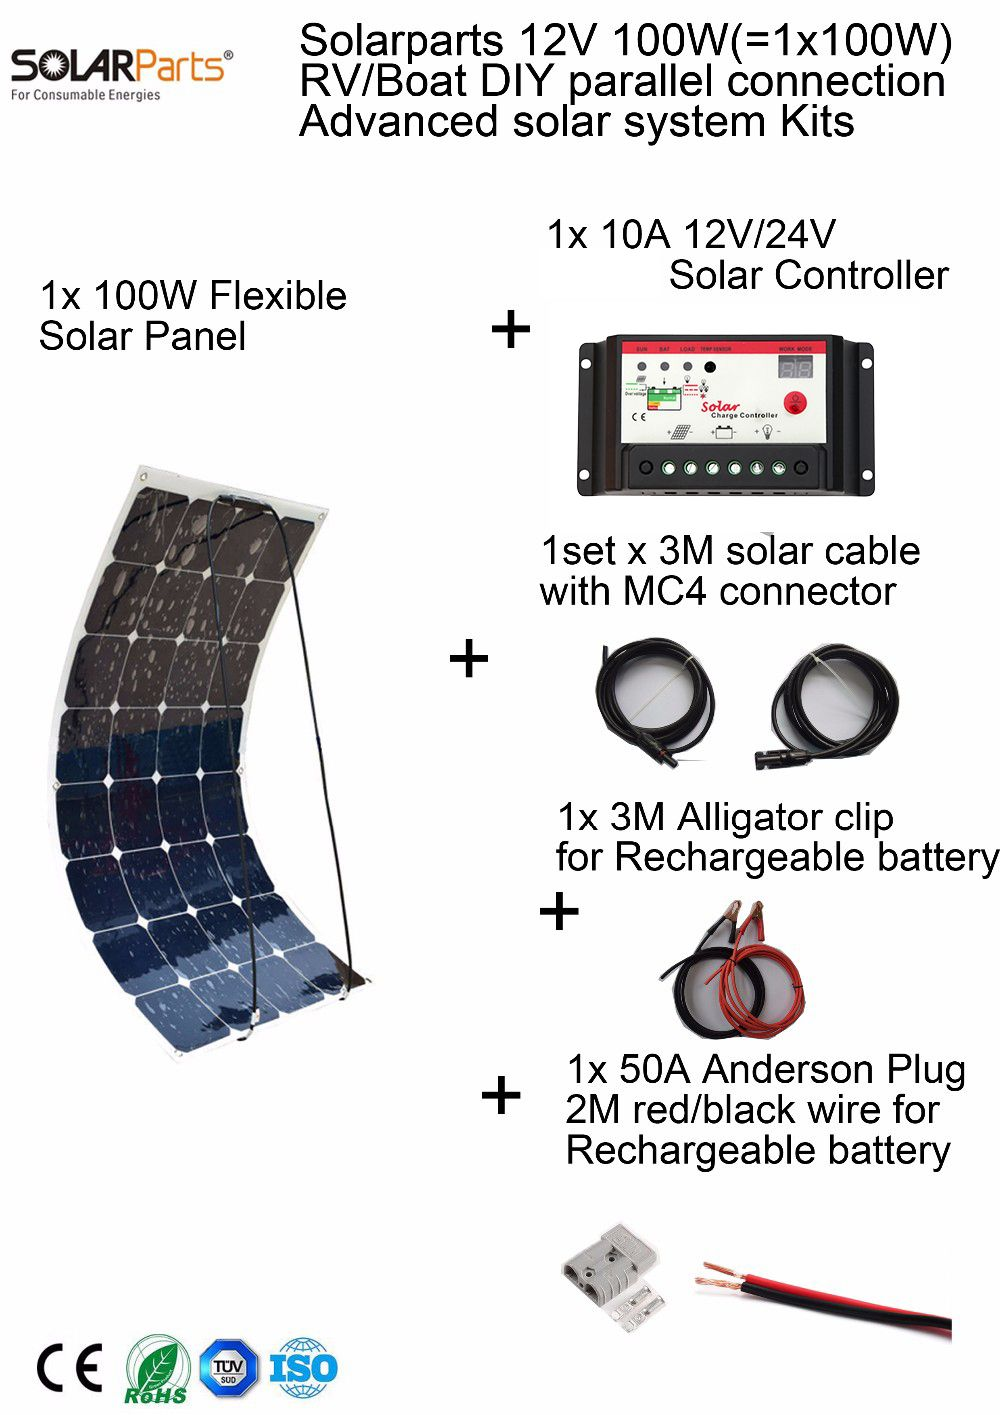 Solarparts 100W DIY RV/Marine Kits Solar System 1x100W flexible solar panel 12V,1x 10A 12V solar controller set cables cheap .